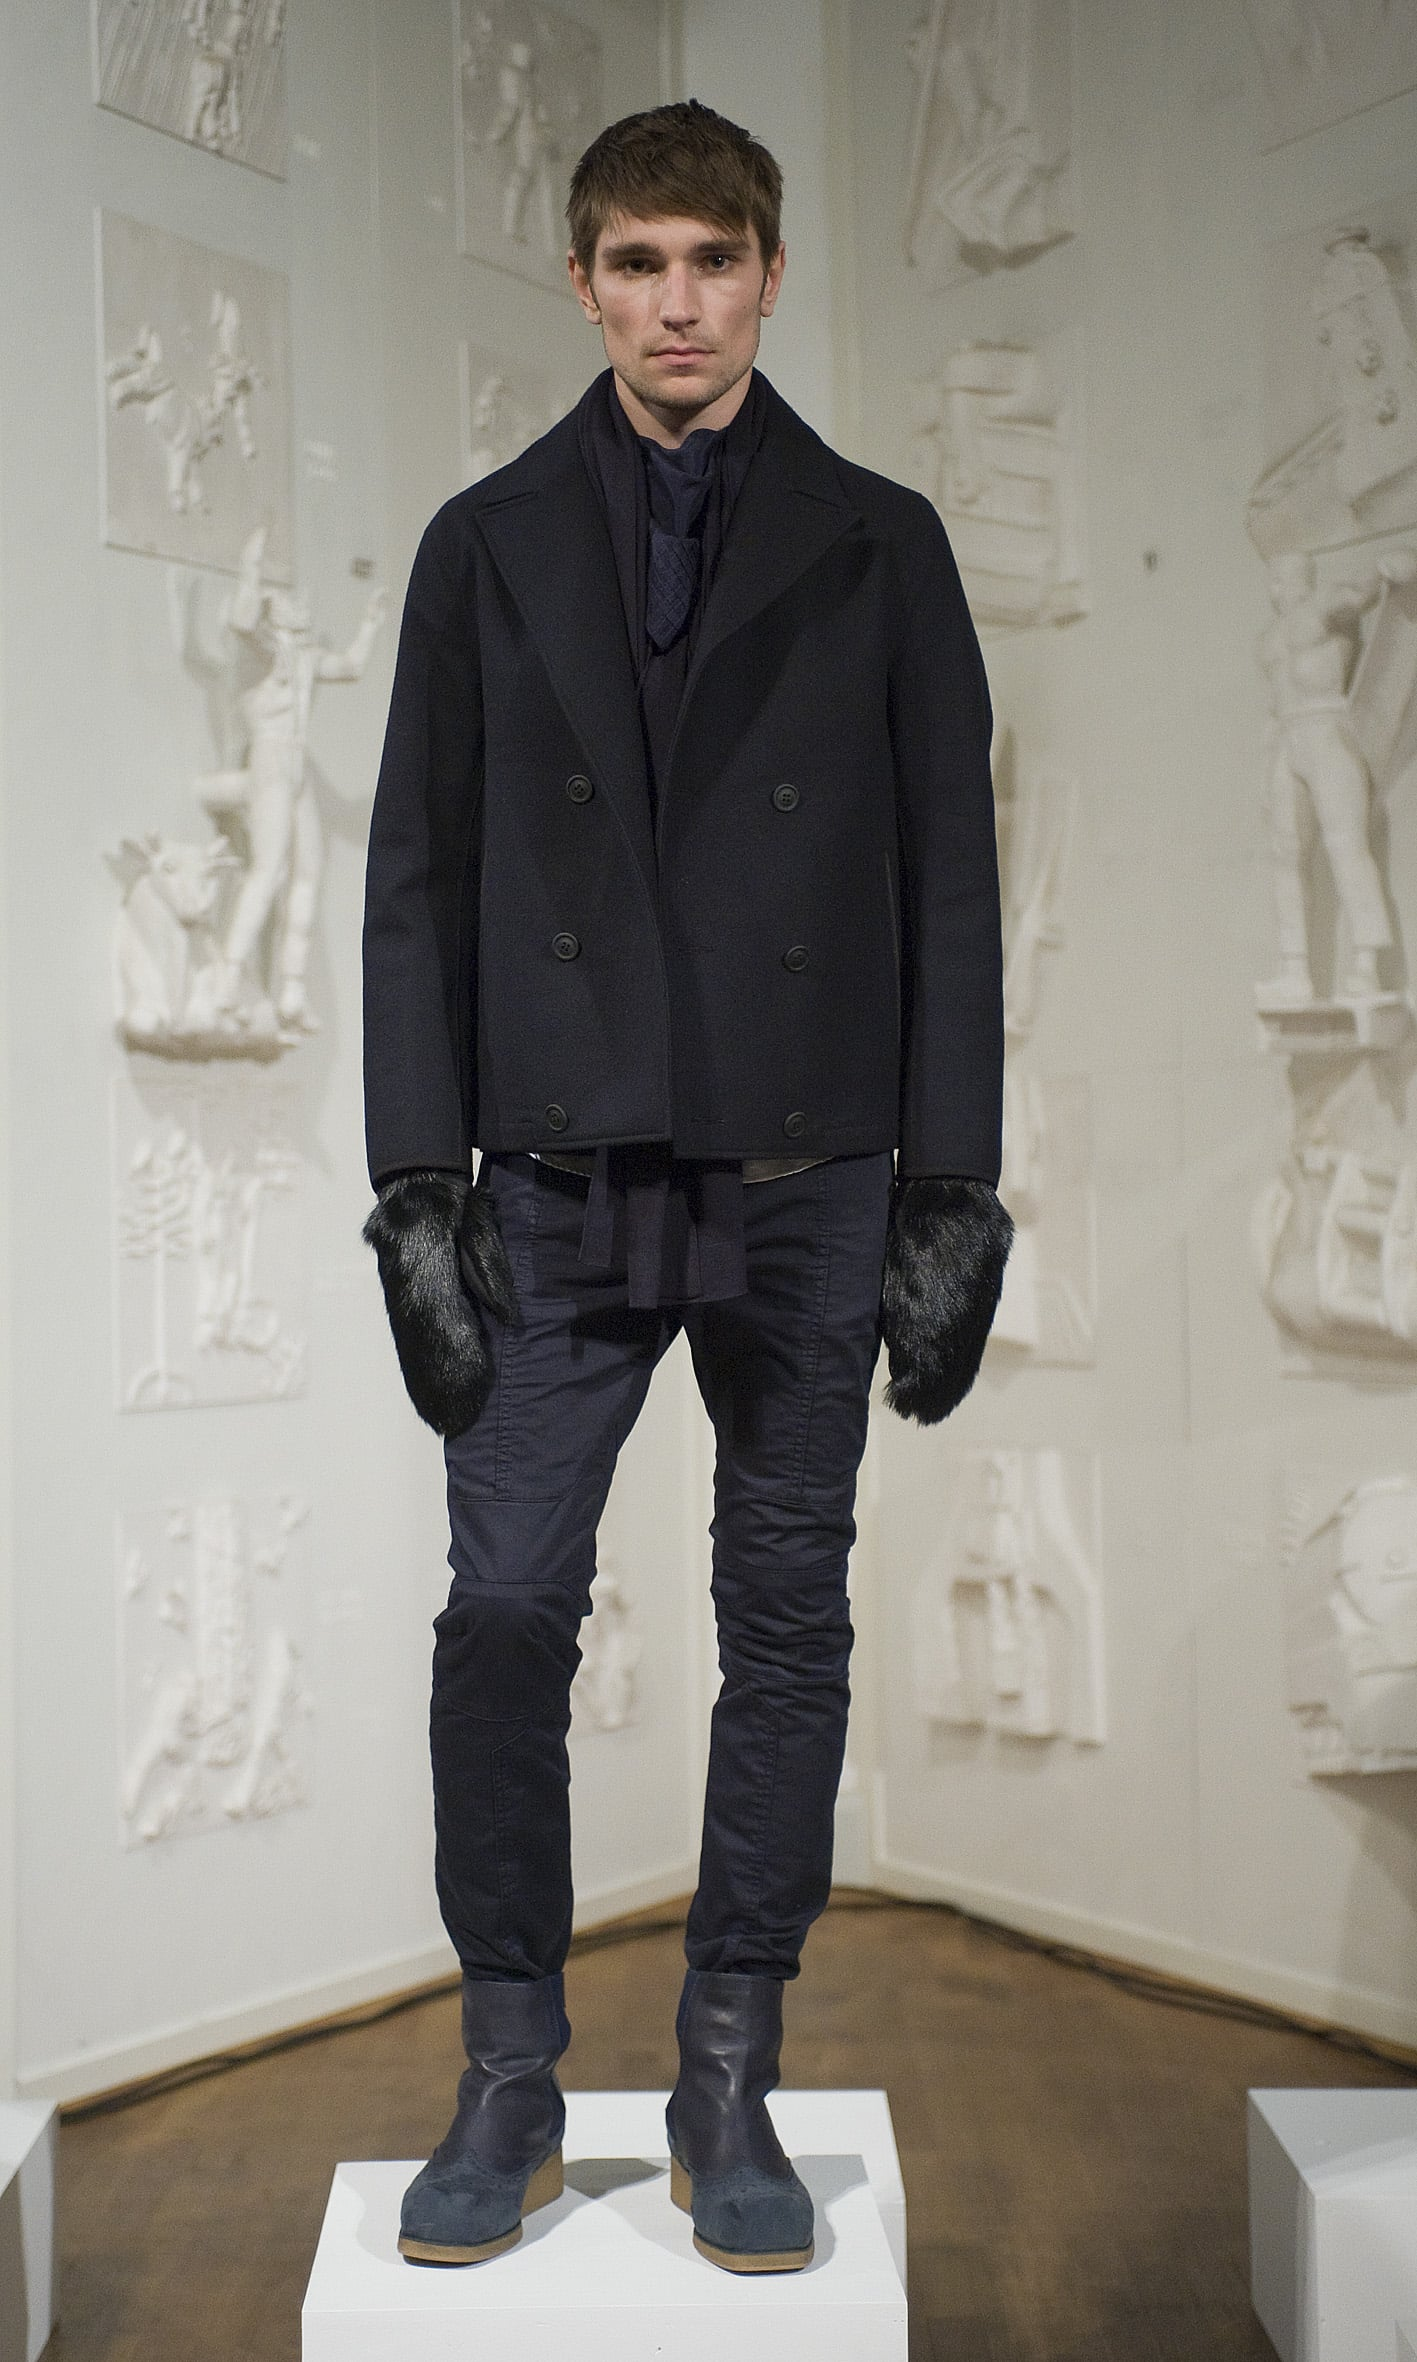 Stockholm Fashion Week: Acne Fall 2009